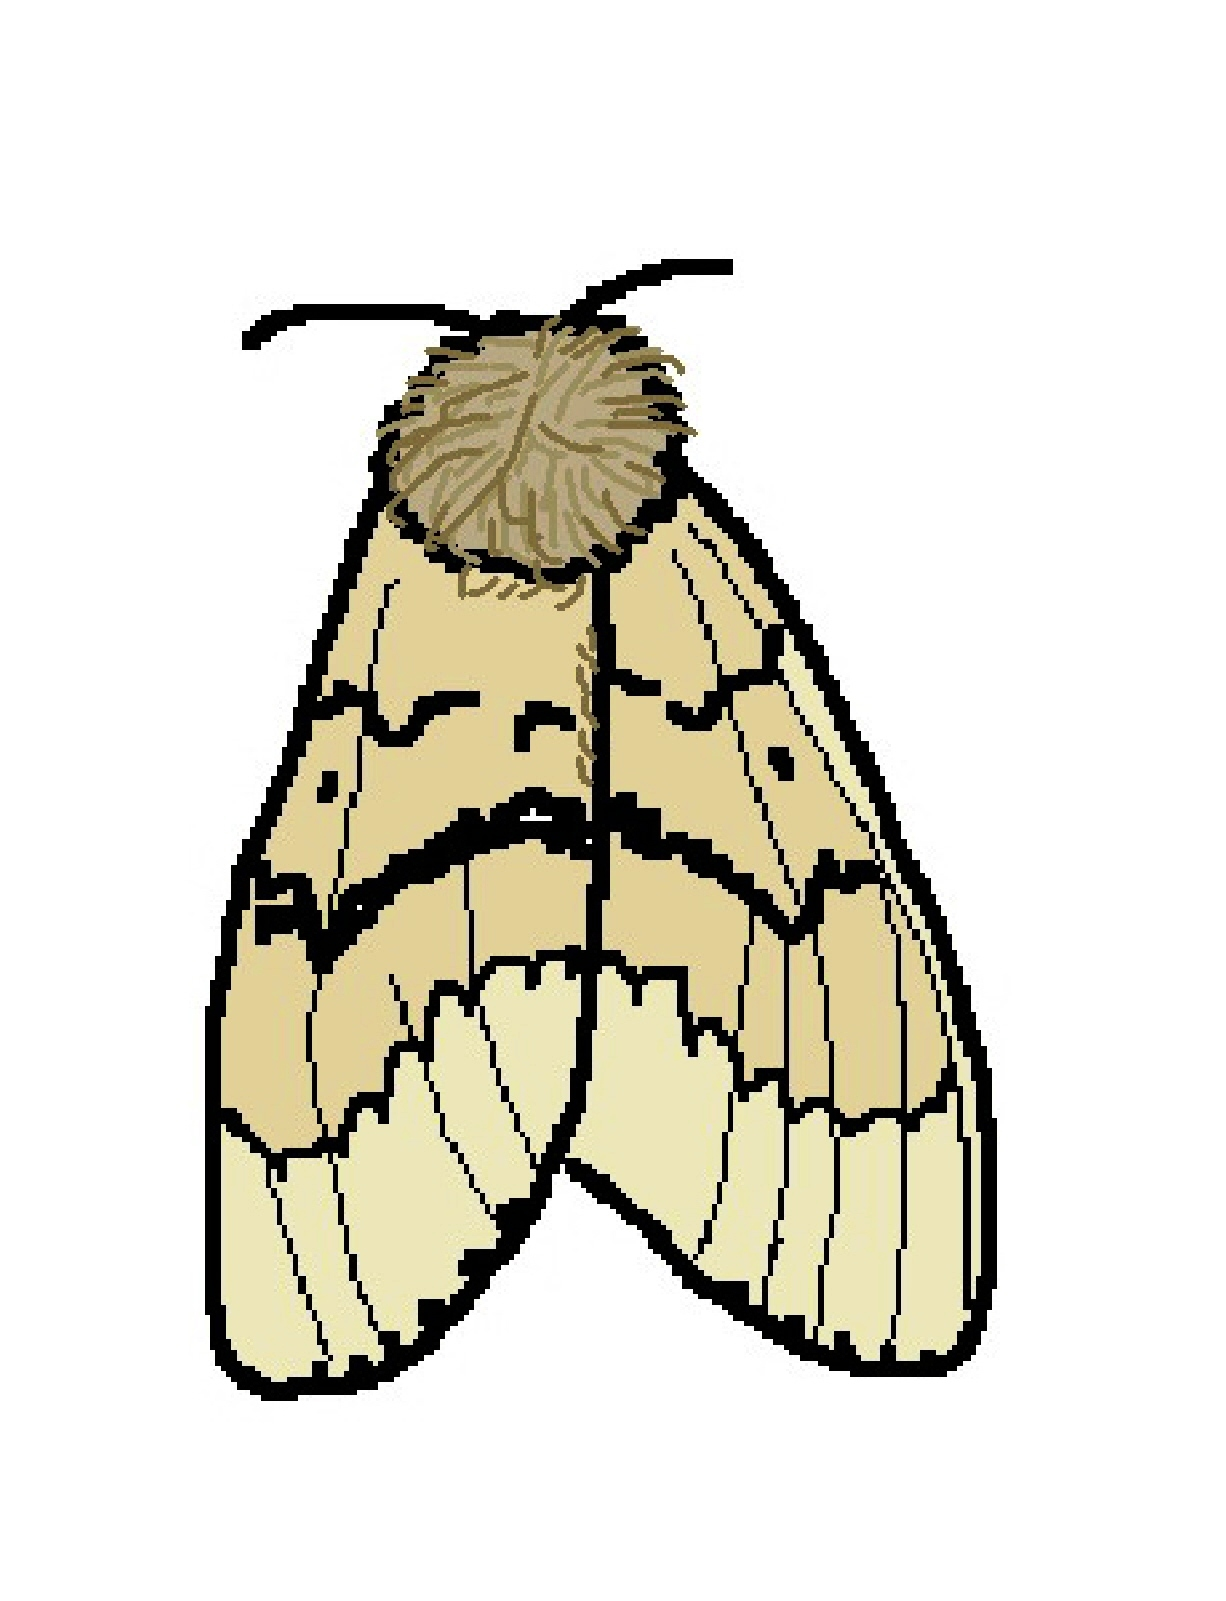 Moth clipart Moth Images moth%20clipart Free Clipart